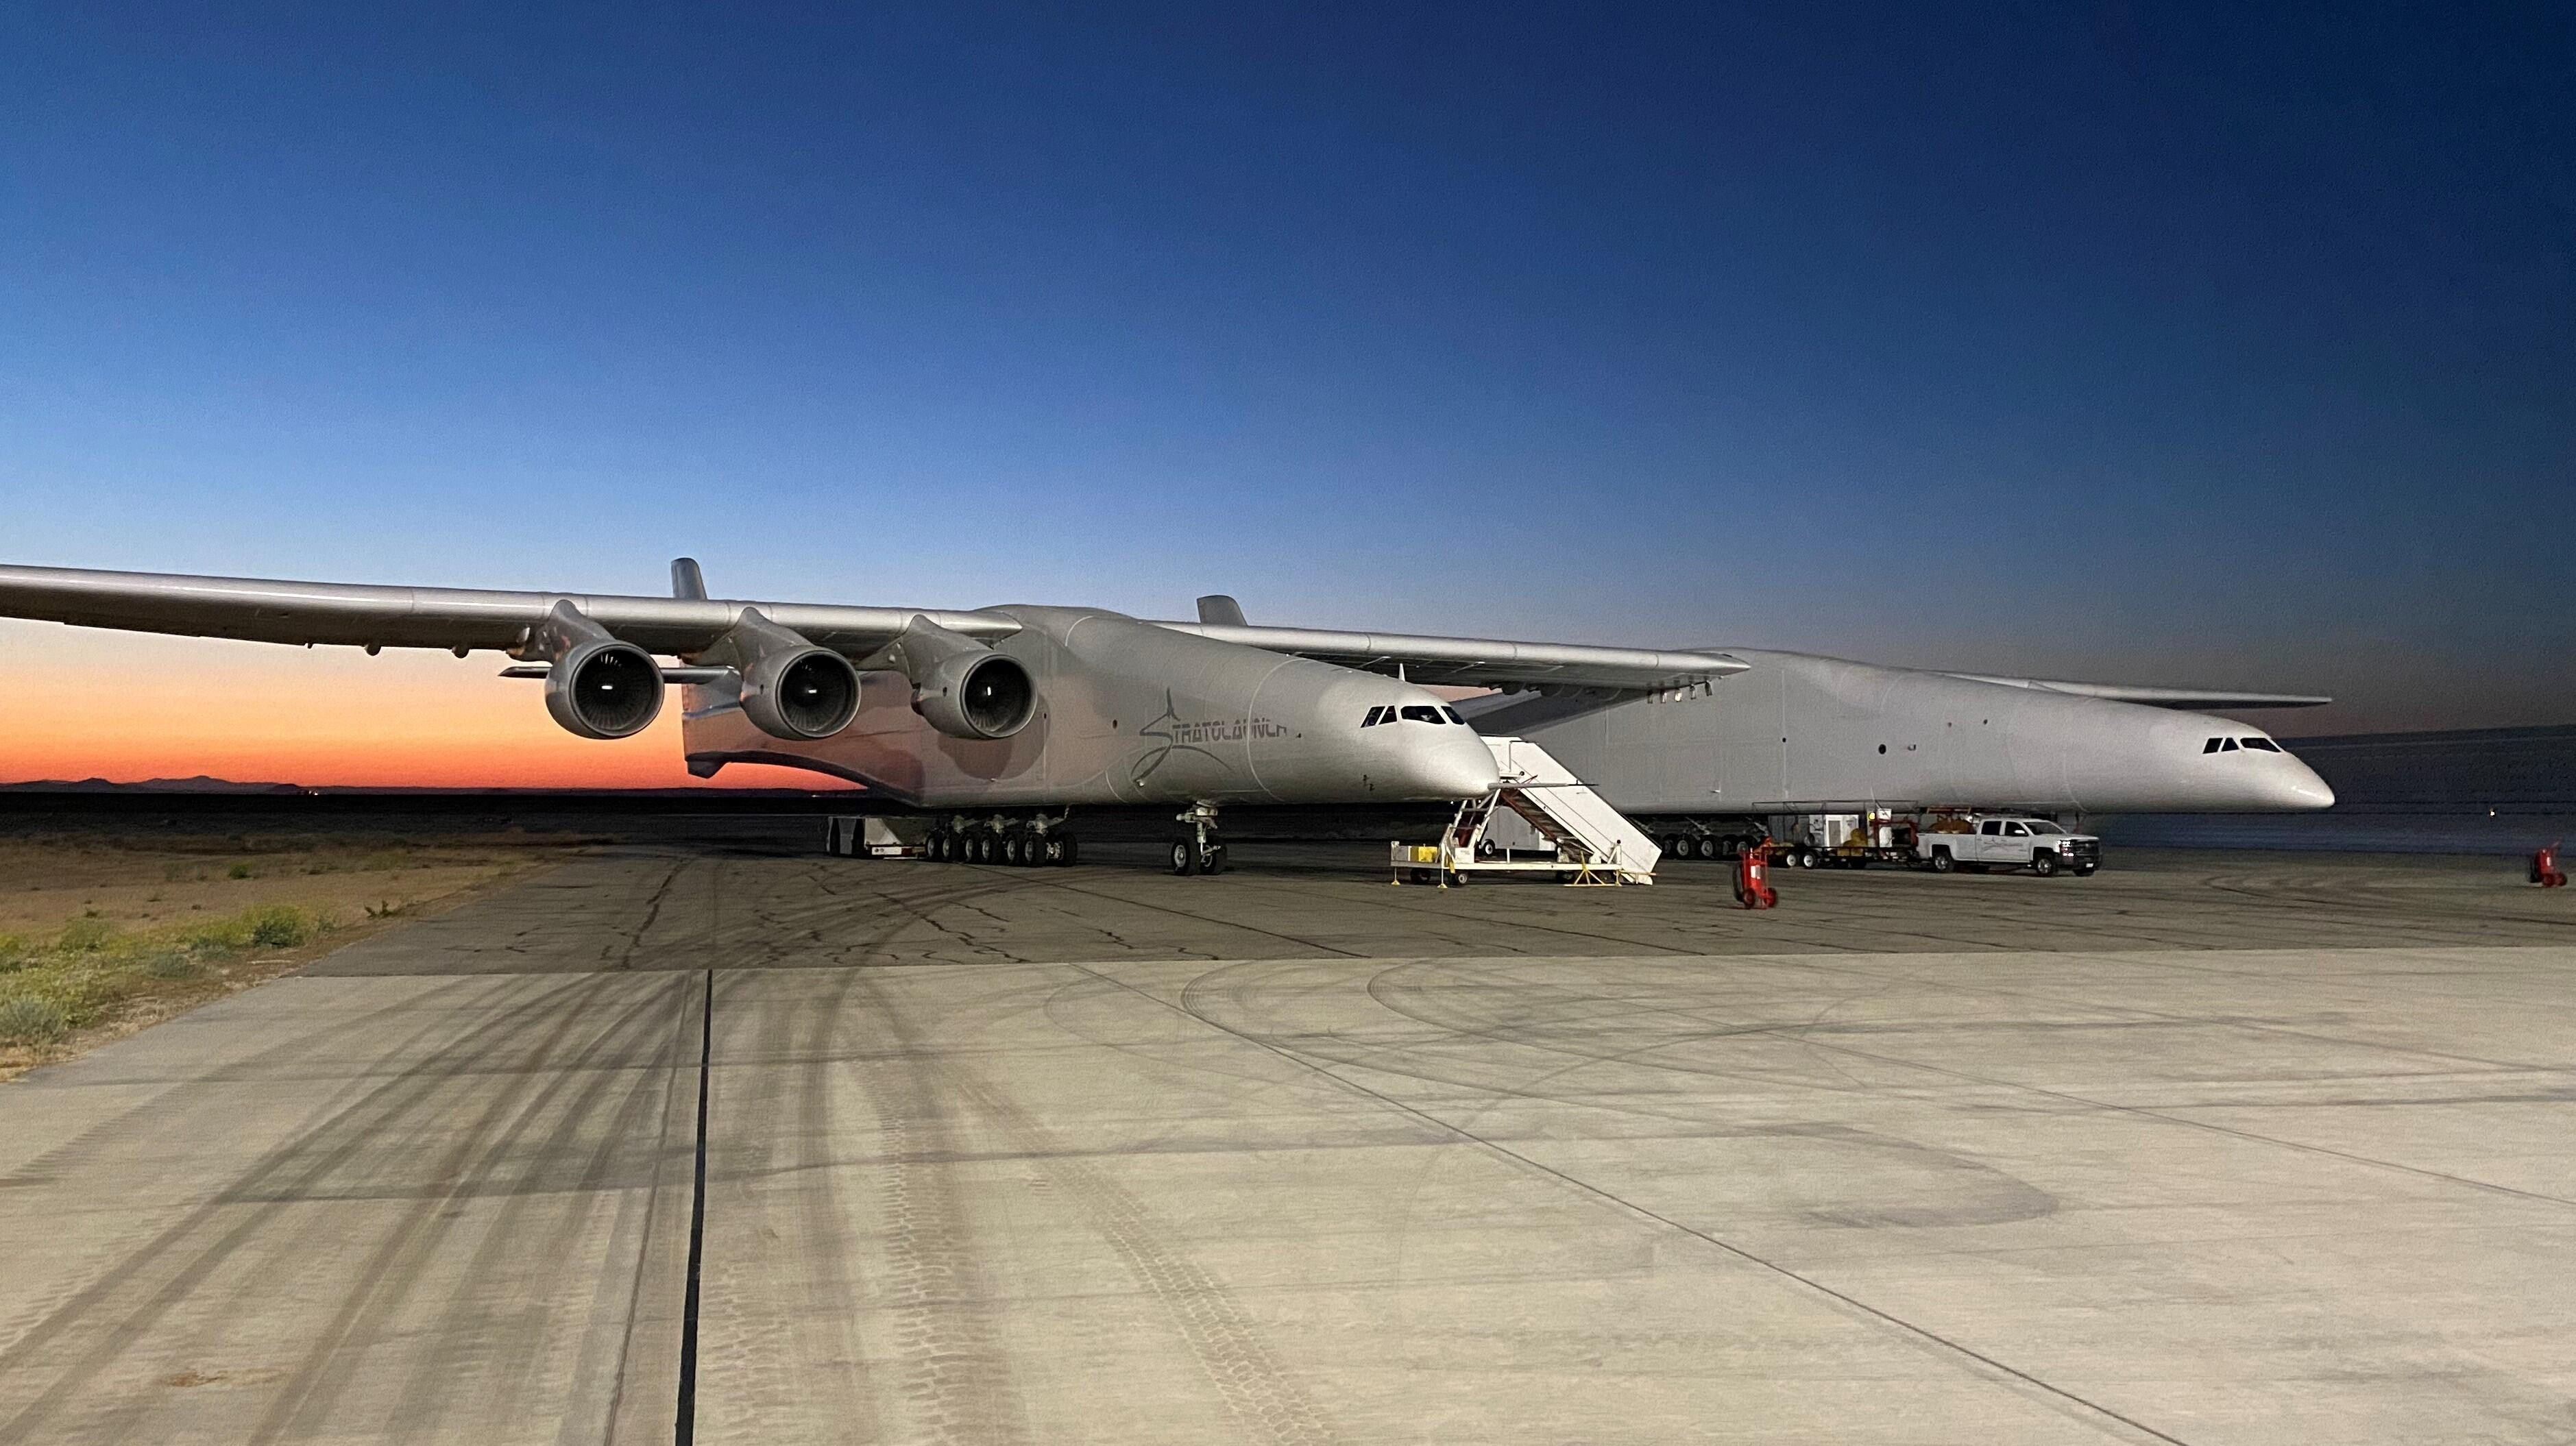 Stratolaunch finally takes flight a second time